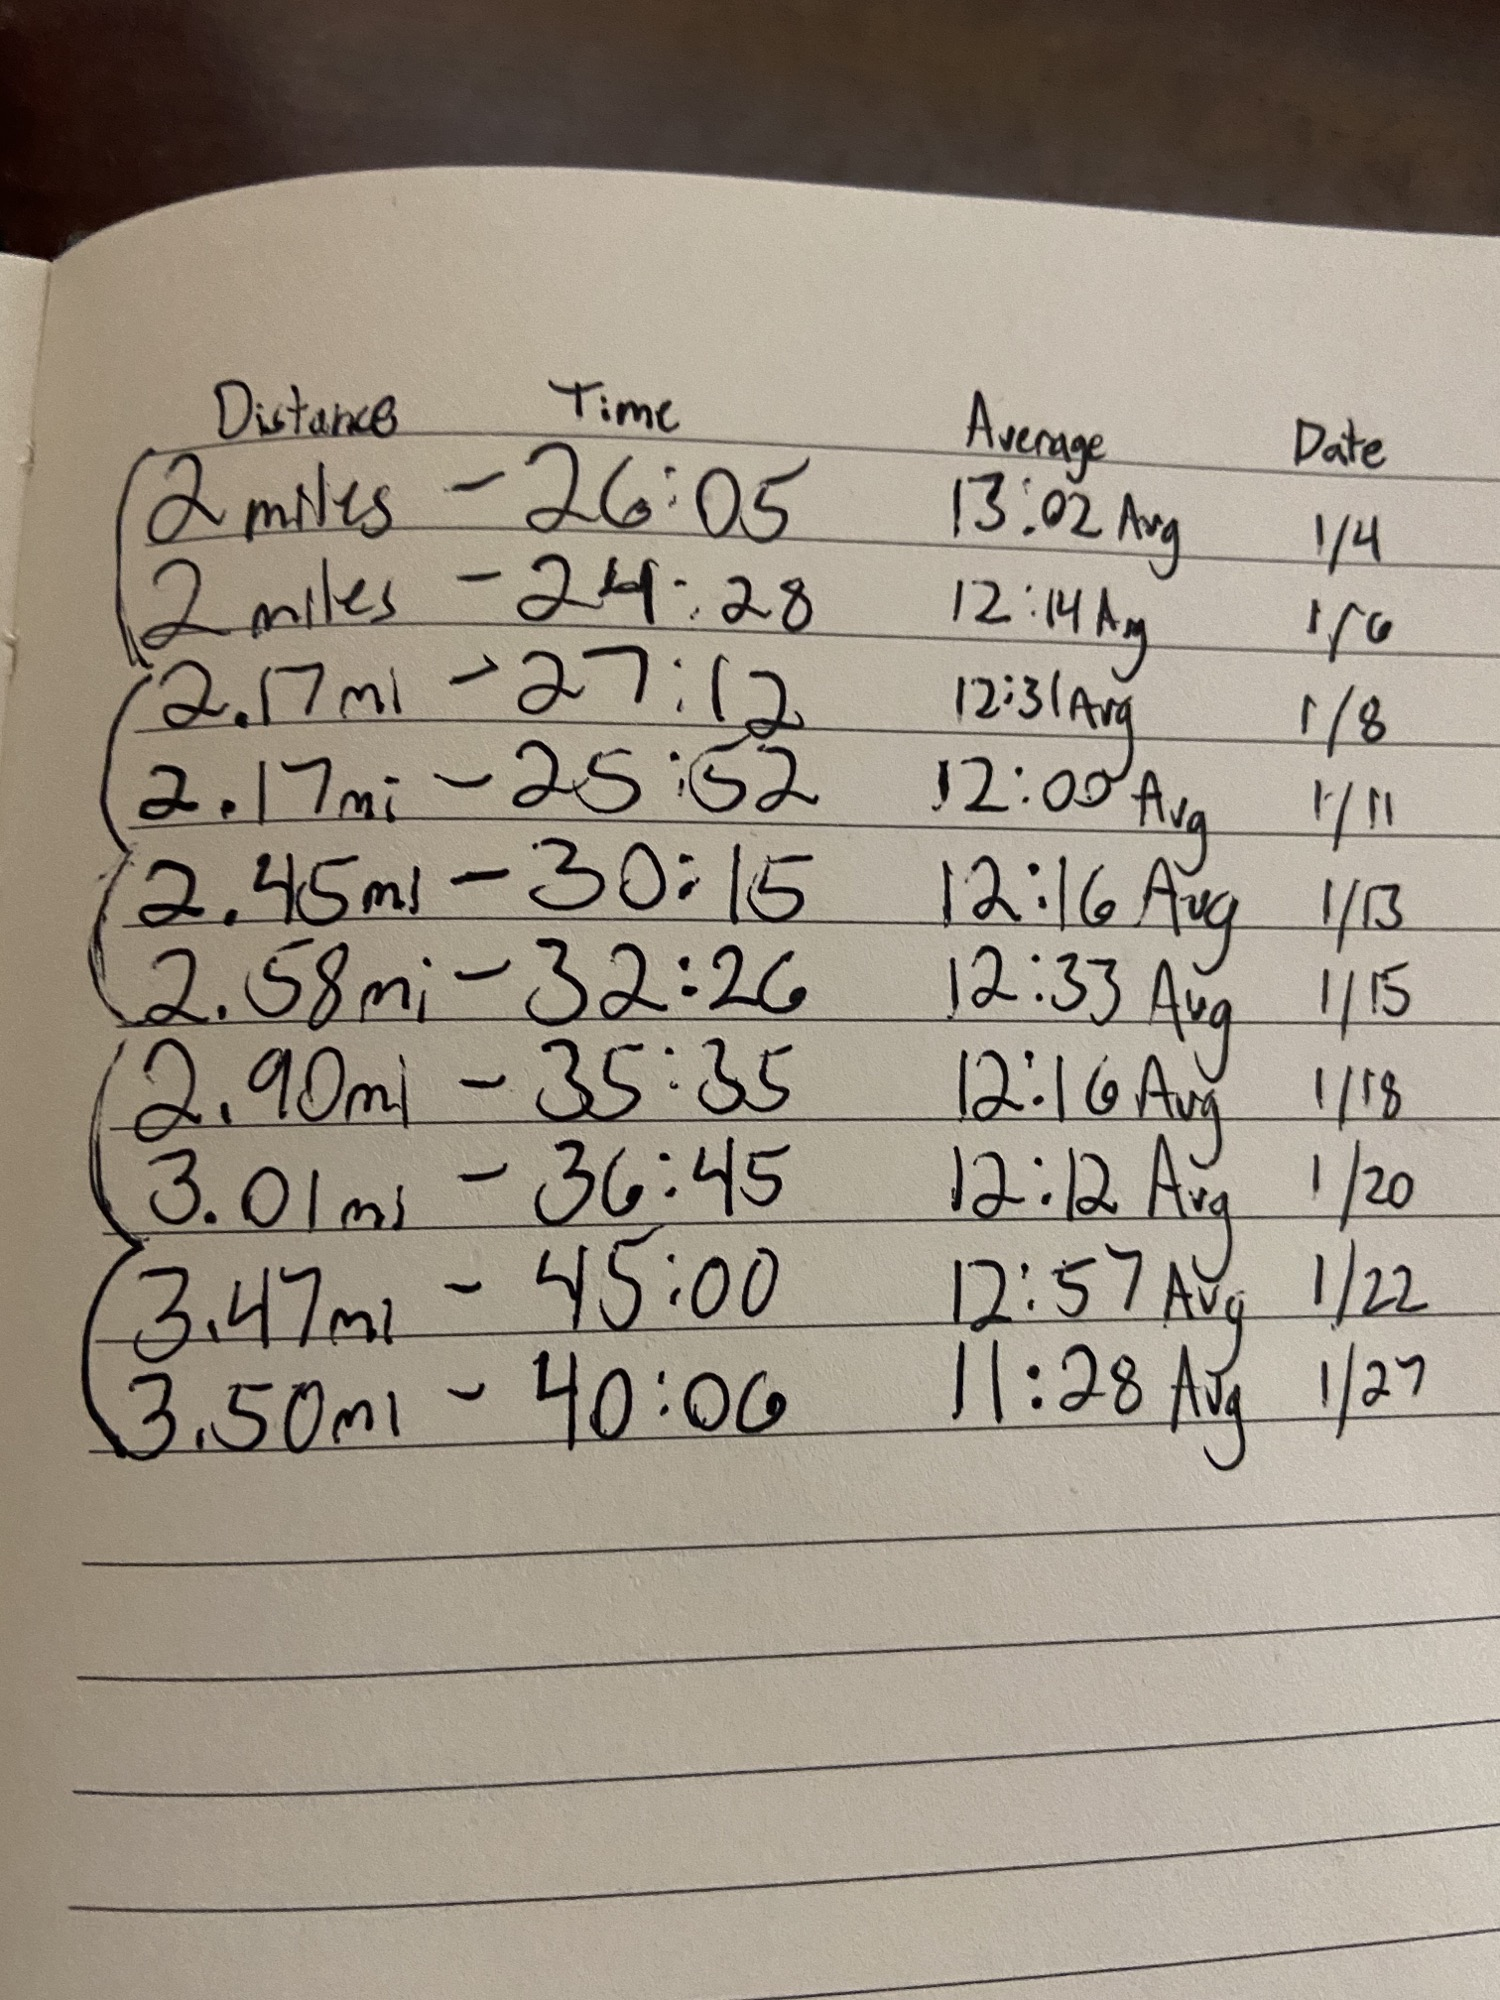 [image] First month of running! Major improvements!